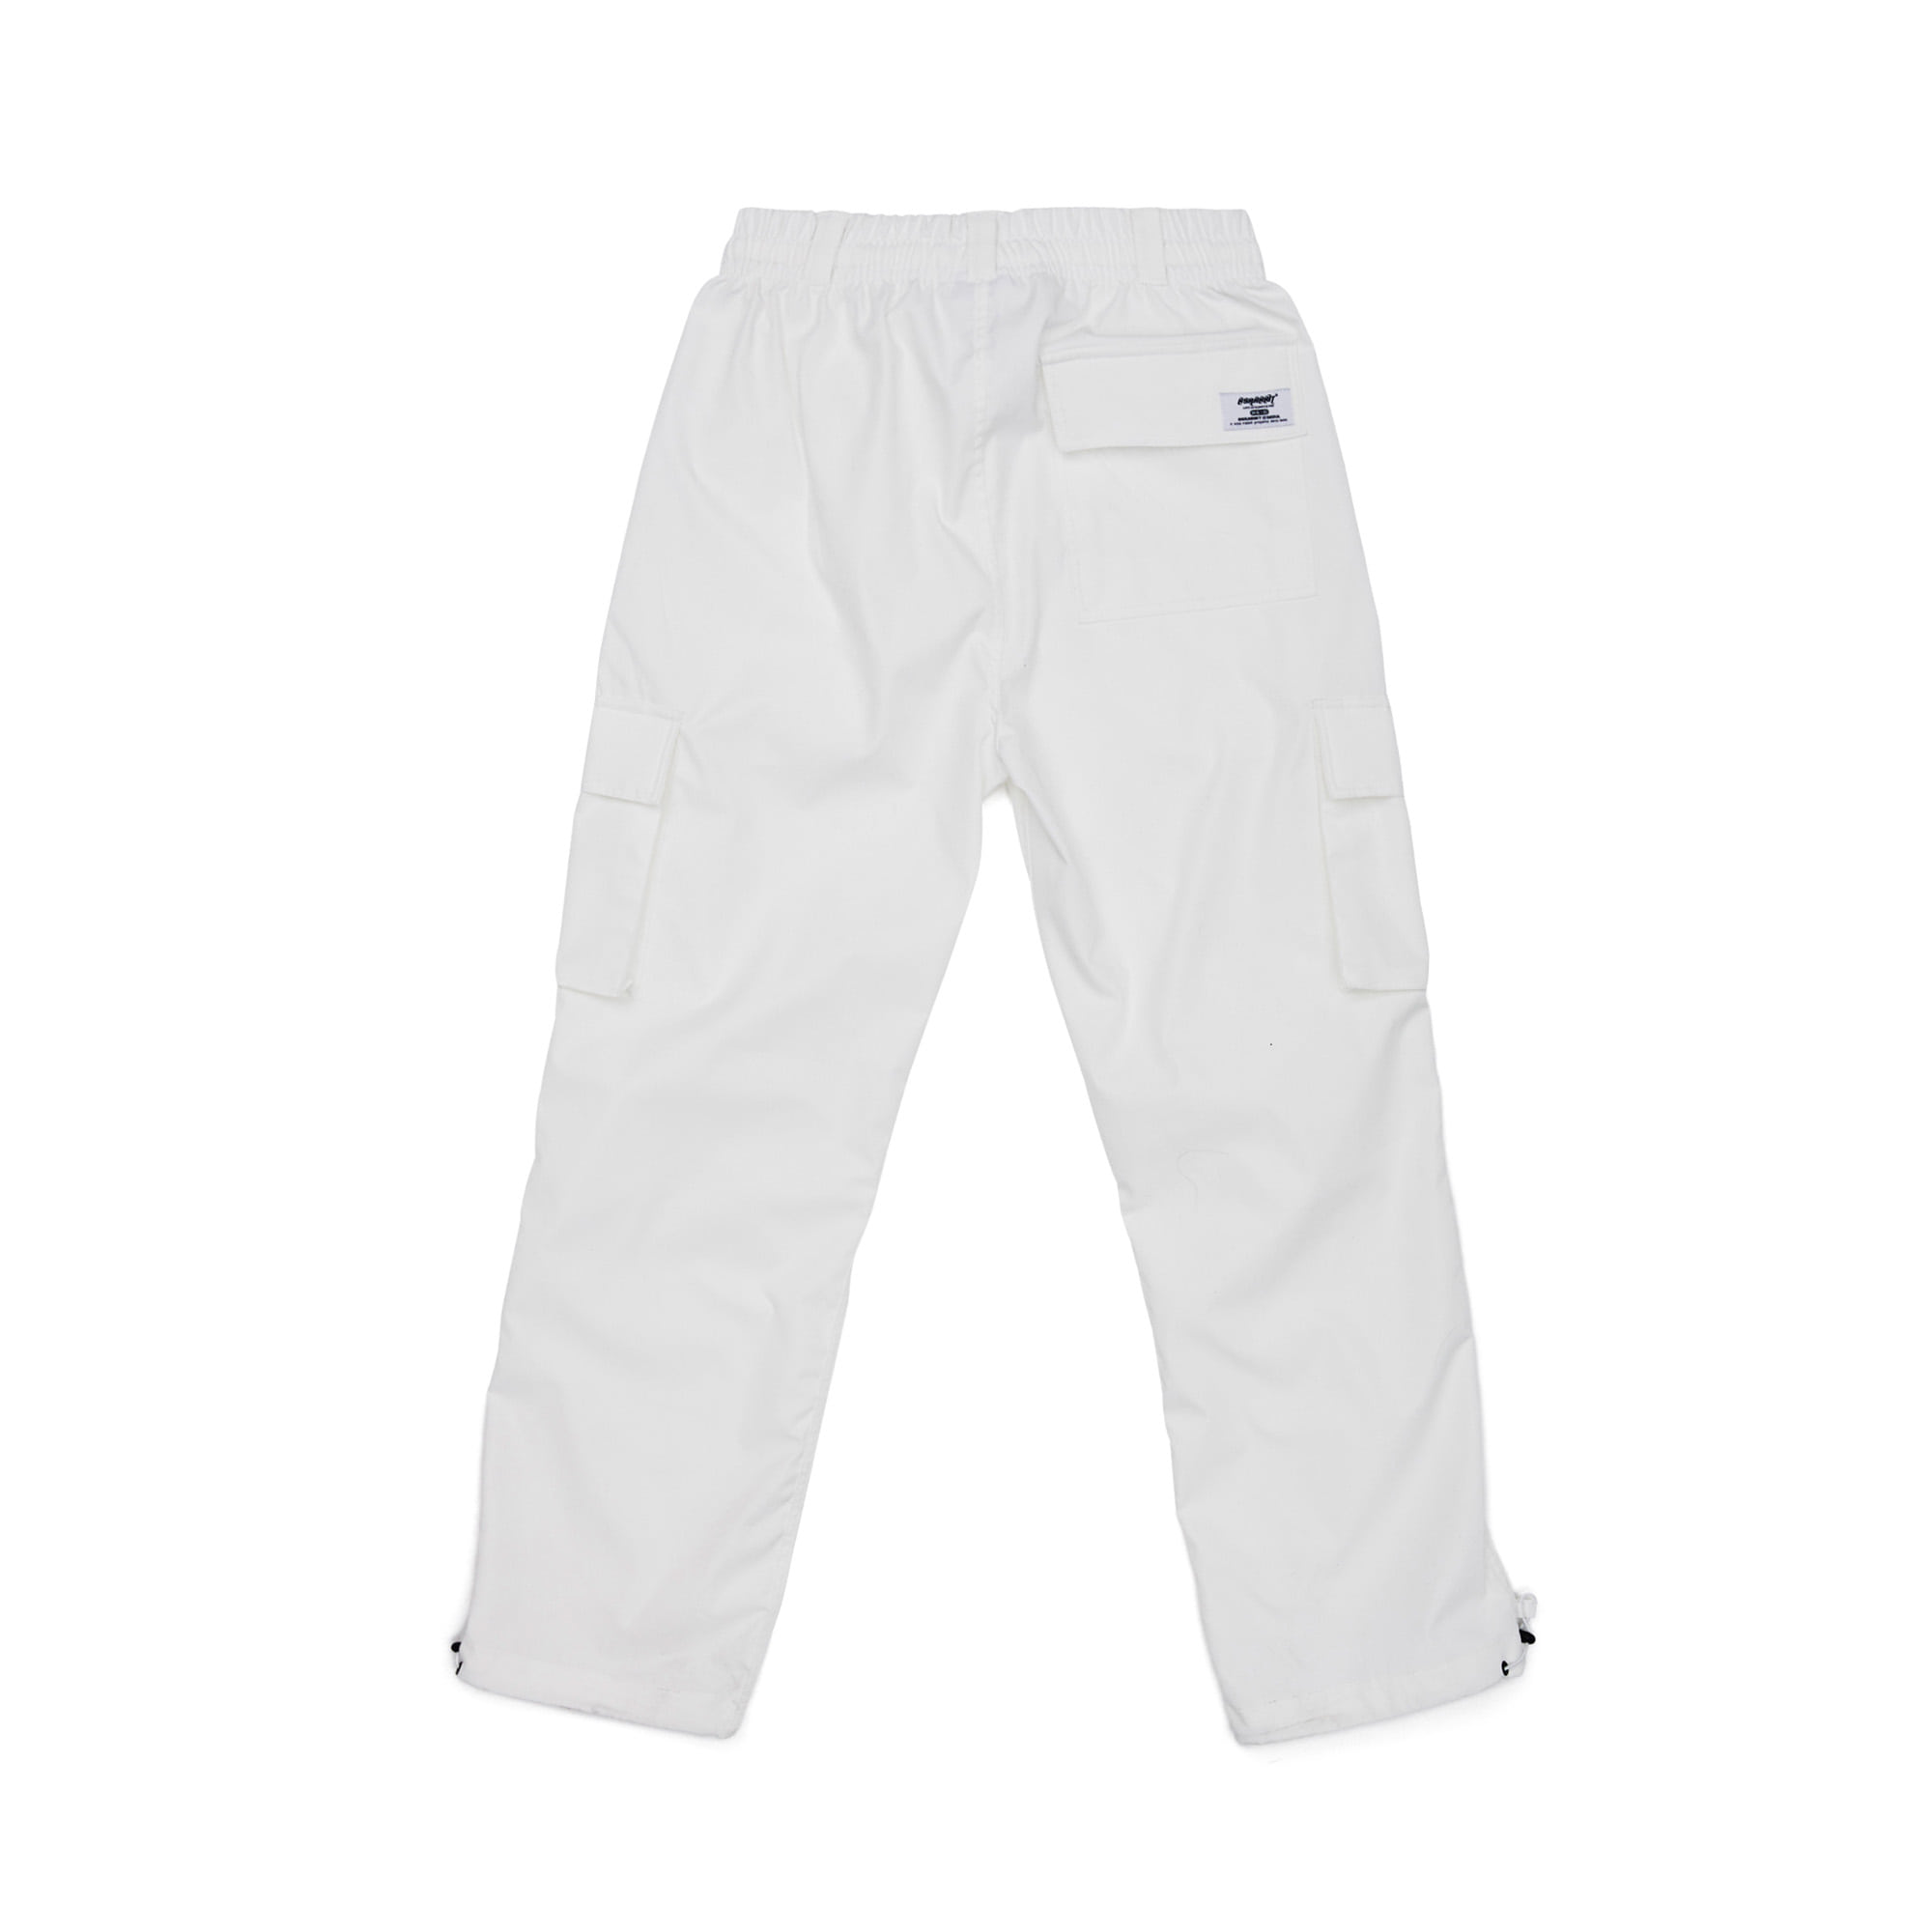 BSRABBIT BSRBT STRETCH TWILL CARGO TRACK PANTS WHITE